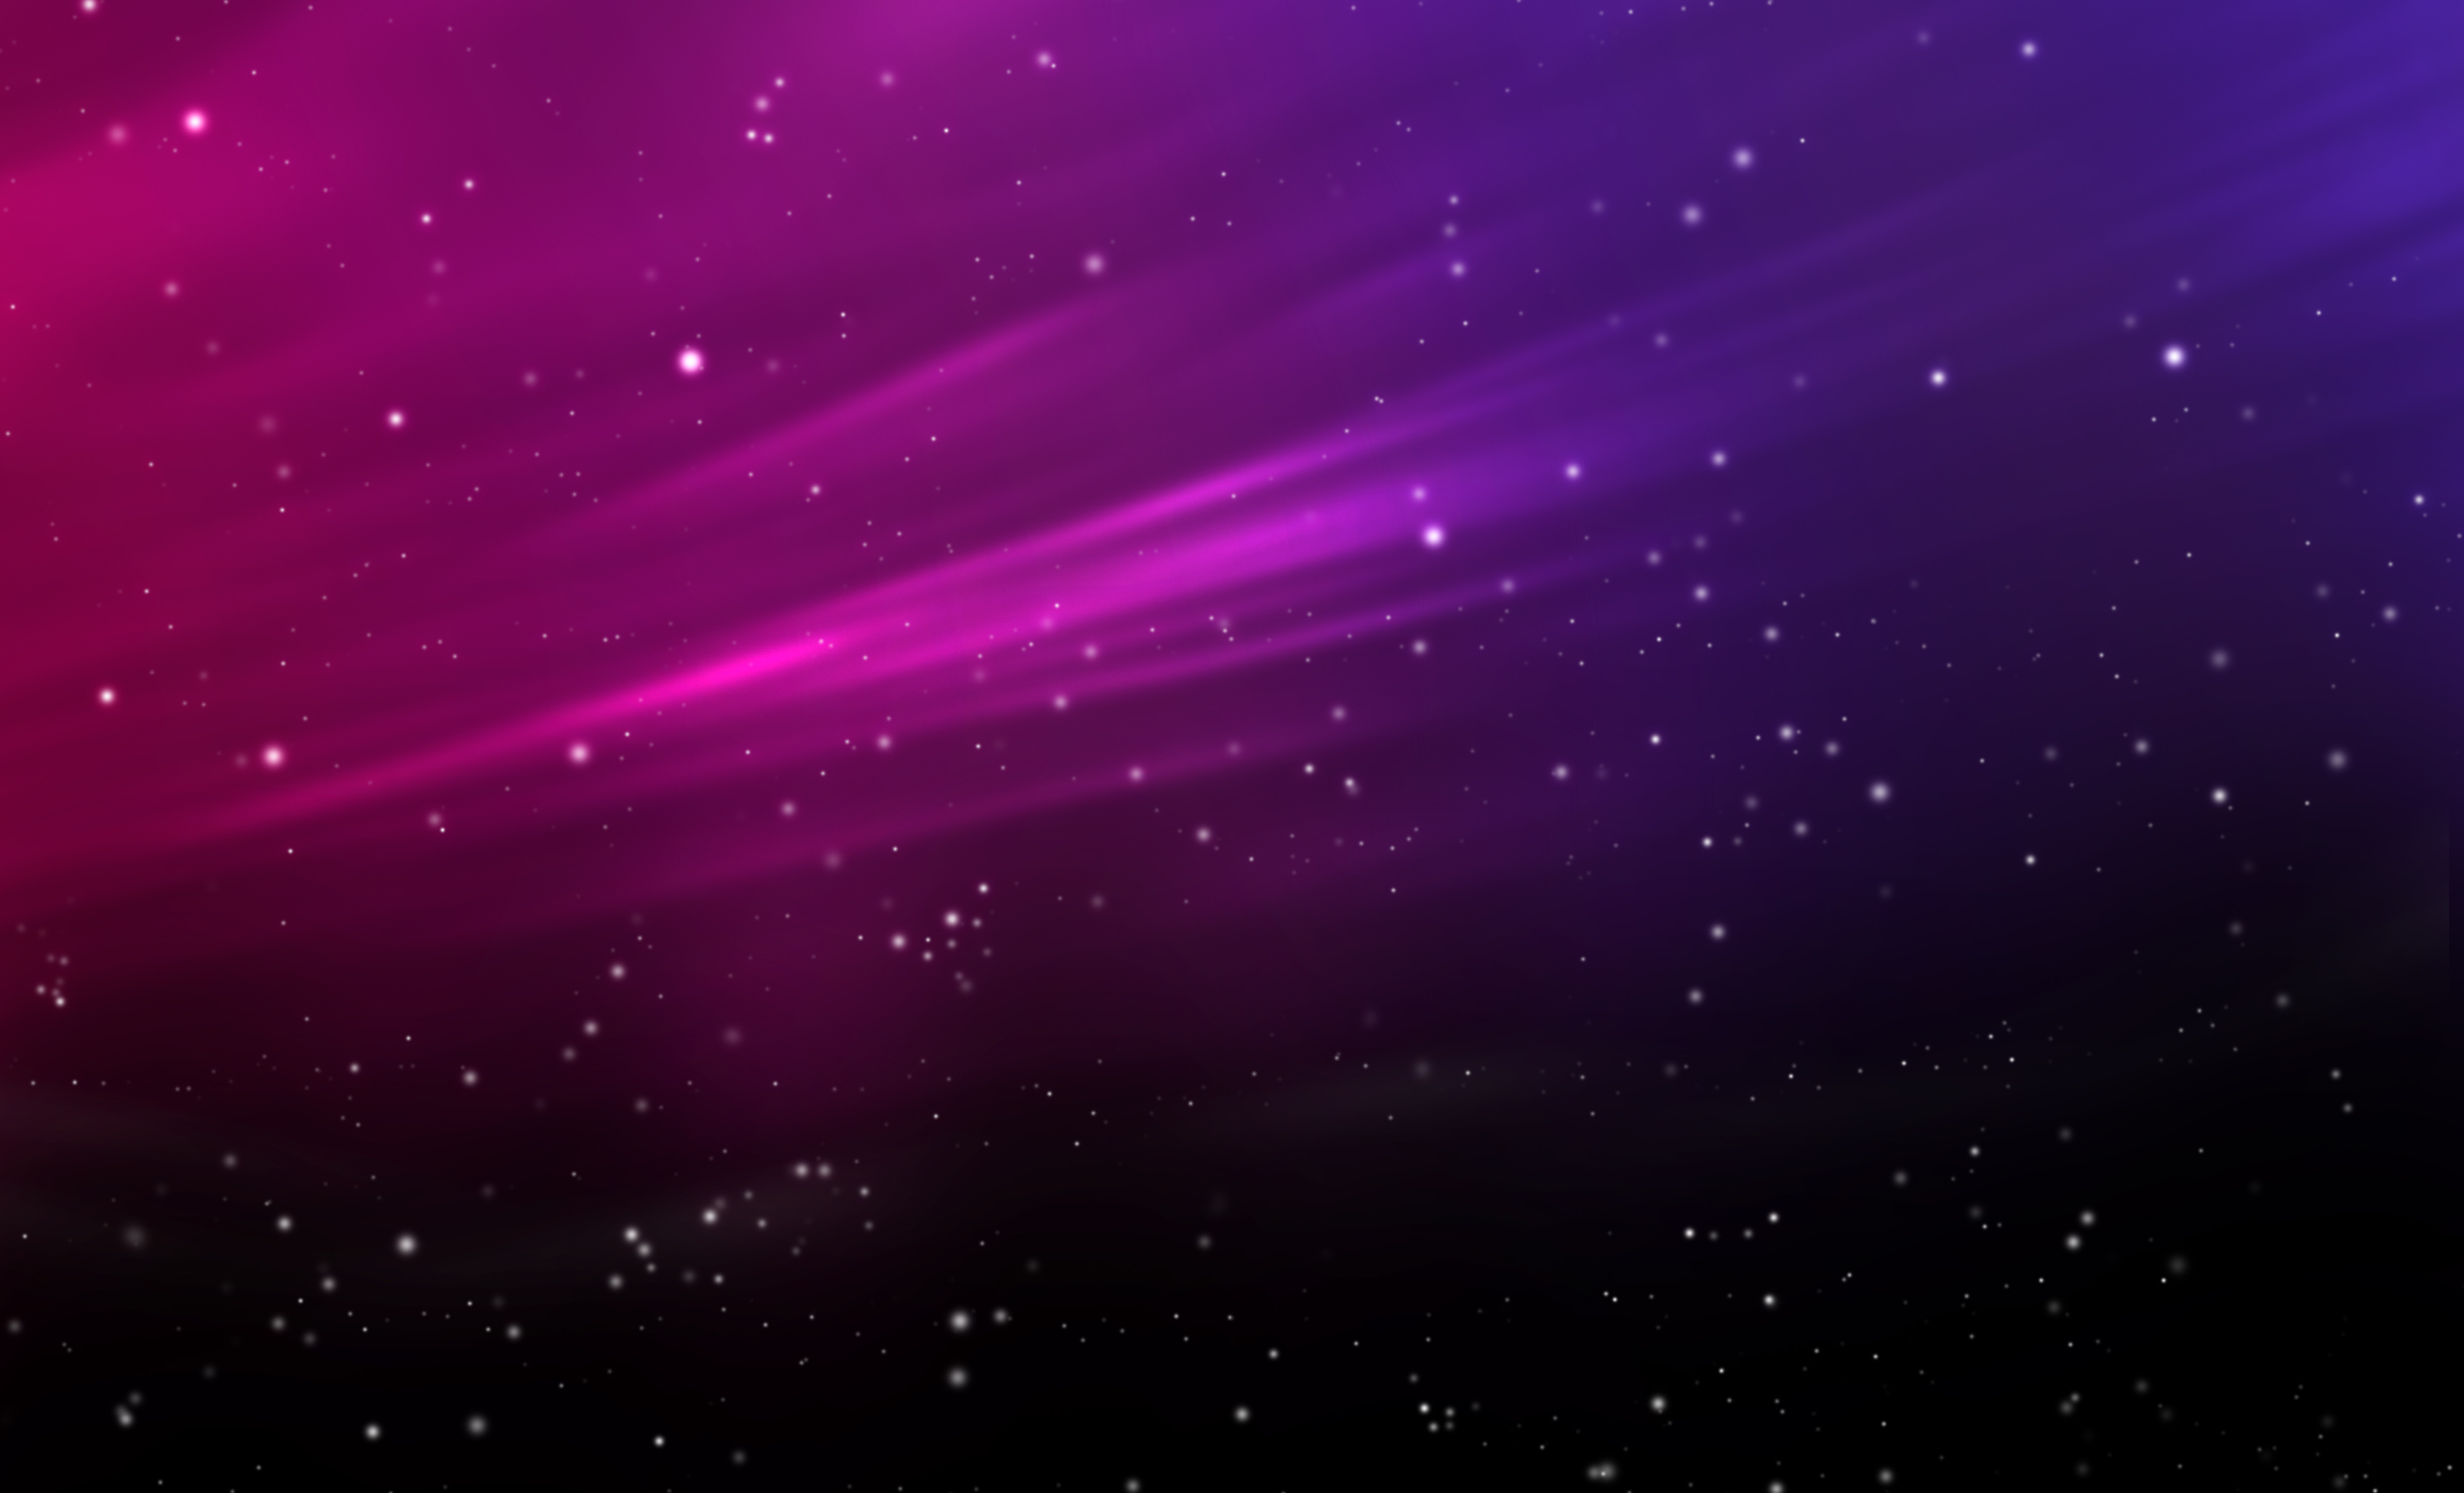 Purple Wallpaper Background PC 7074 Wallpaper Cool Walldiskpaper 4000x2423